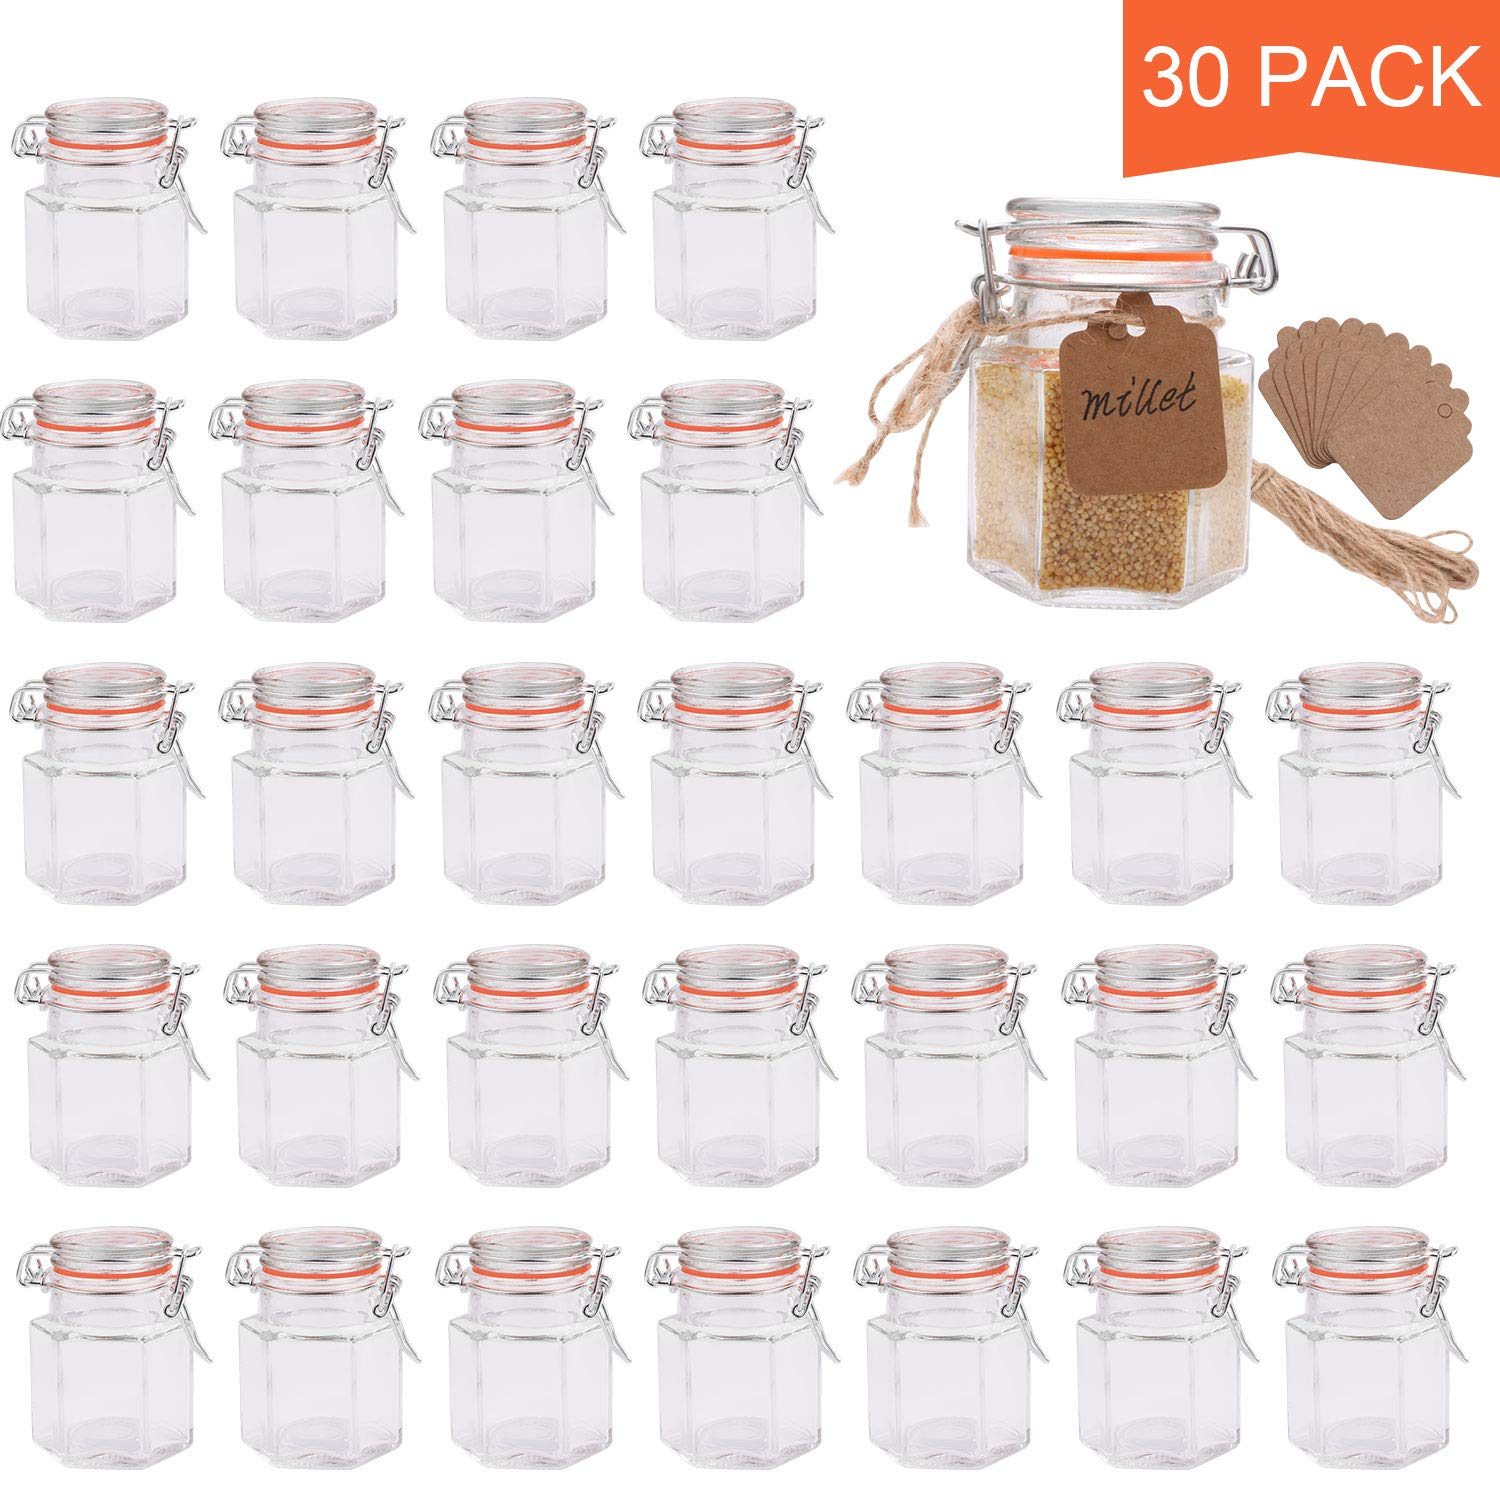 Small Glass Jars,Encheng 4 oz Hexagon Jars With Airtight Lids And Leak Proof Rubber Gasket,Small Mason Jars With Hinged Lids For Kitchen,Mini Spice Jars With Twine And Tags Labeling 30 Pack